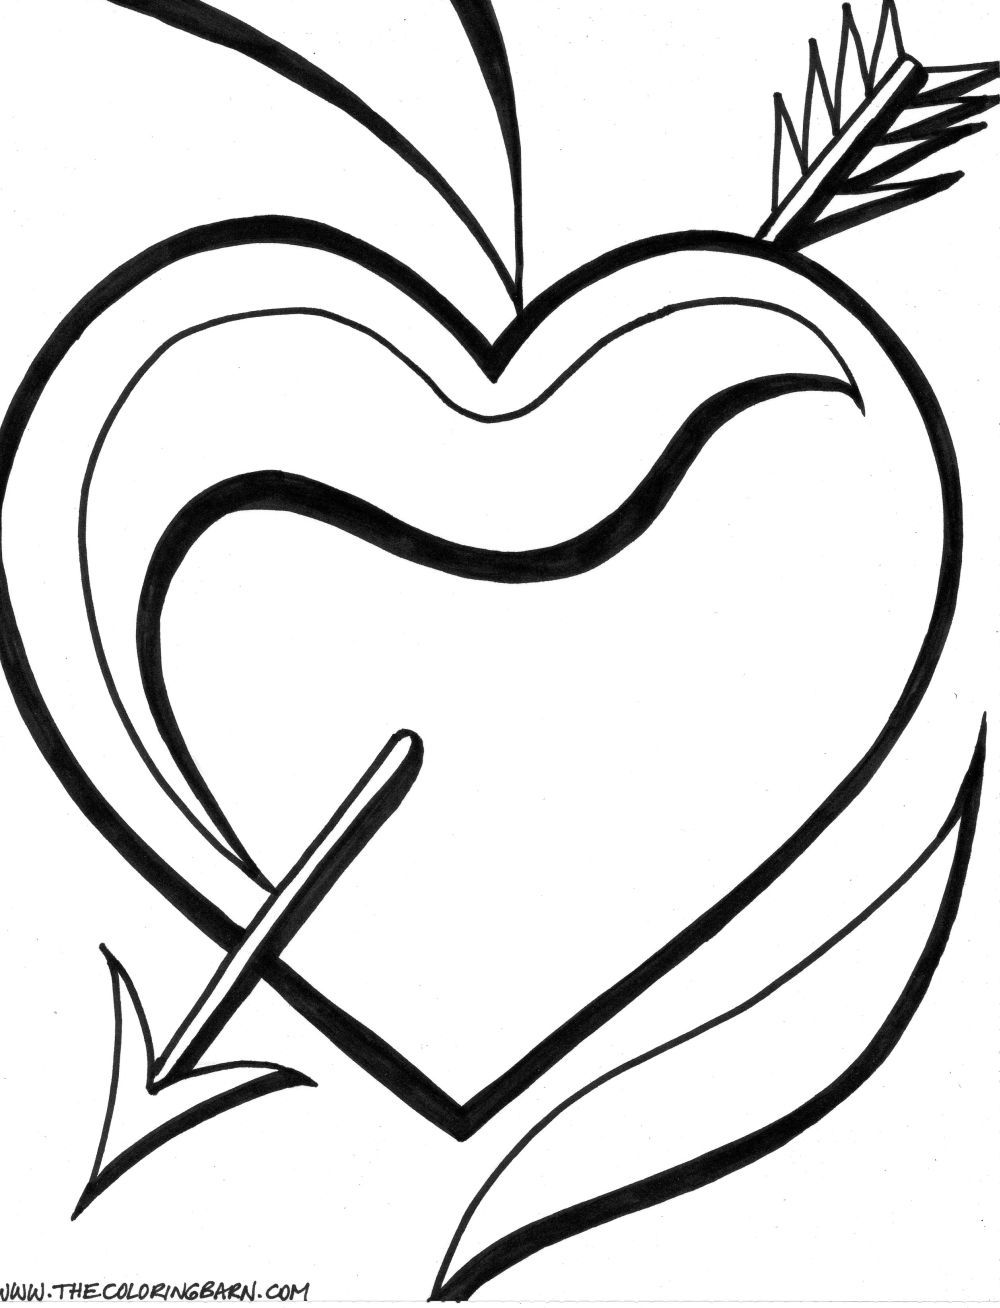 heart coloring pages and heart coloring page roses valentine coloring page tied hearts - Coloring Pages Hearts Roses